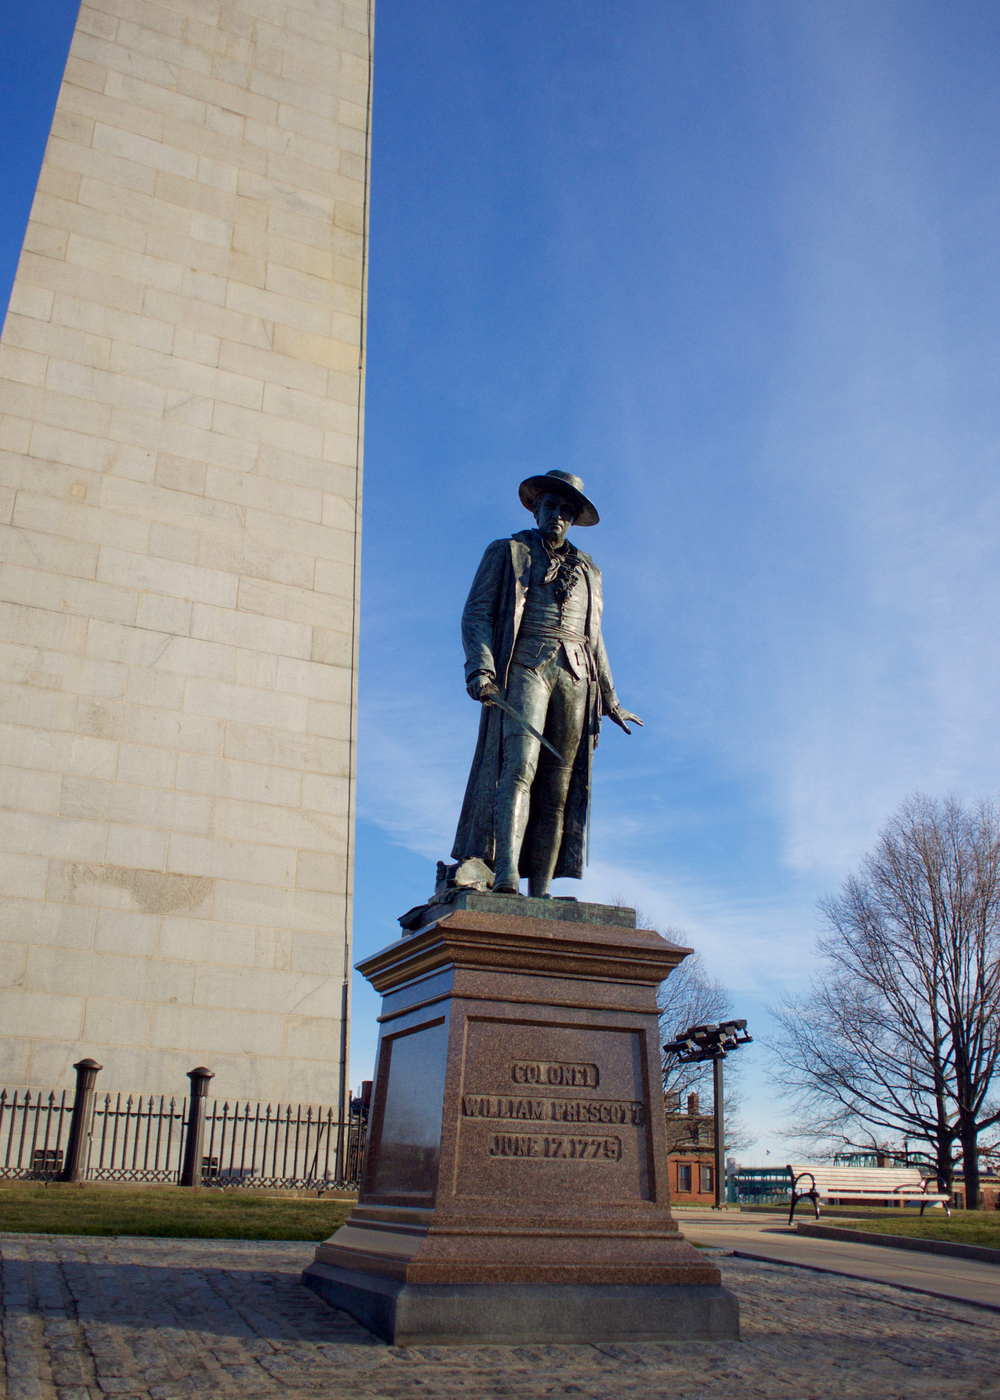 IRL Col. Prescott Statue from South Side Main Entrance